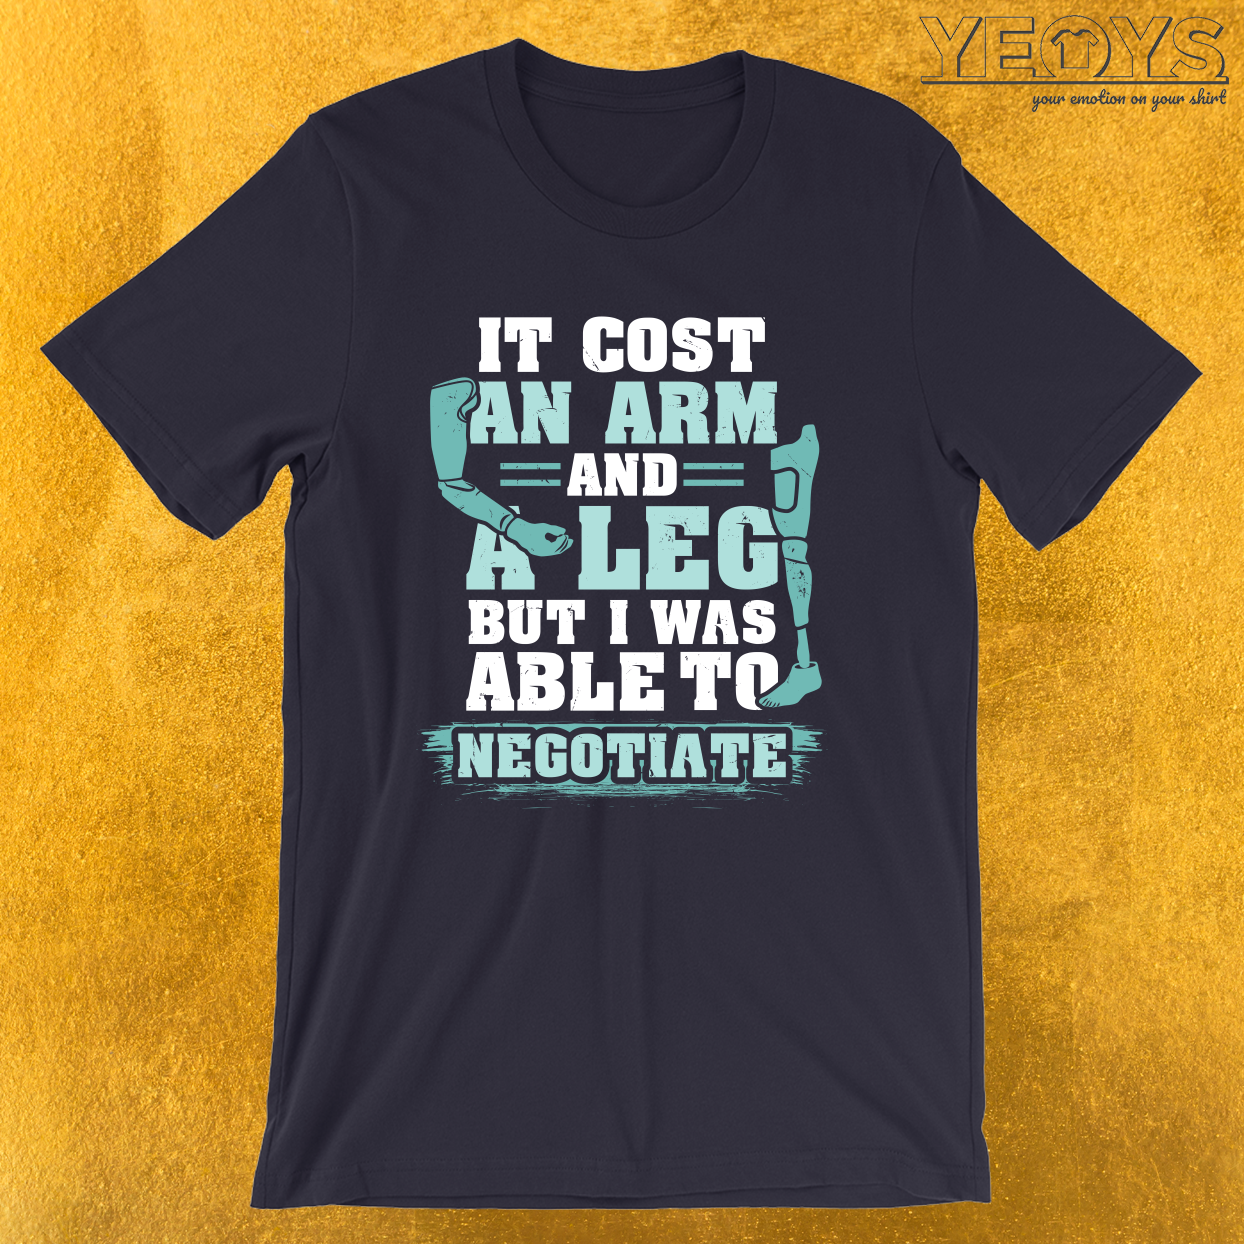 It Cost An Arm And A Leg But I Was Able To Negotiate – Amputee Quotes Tee